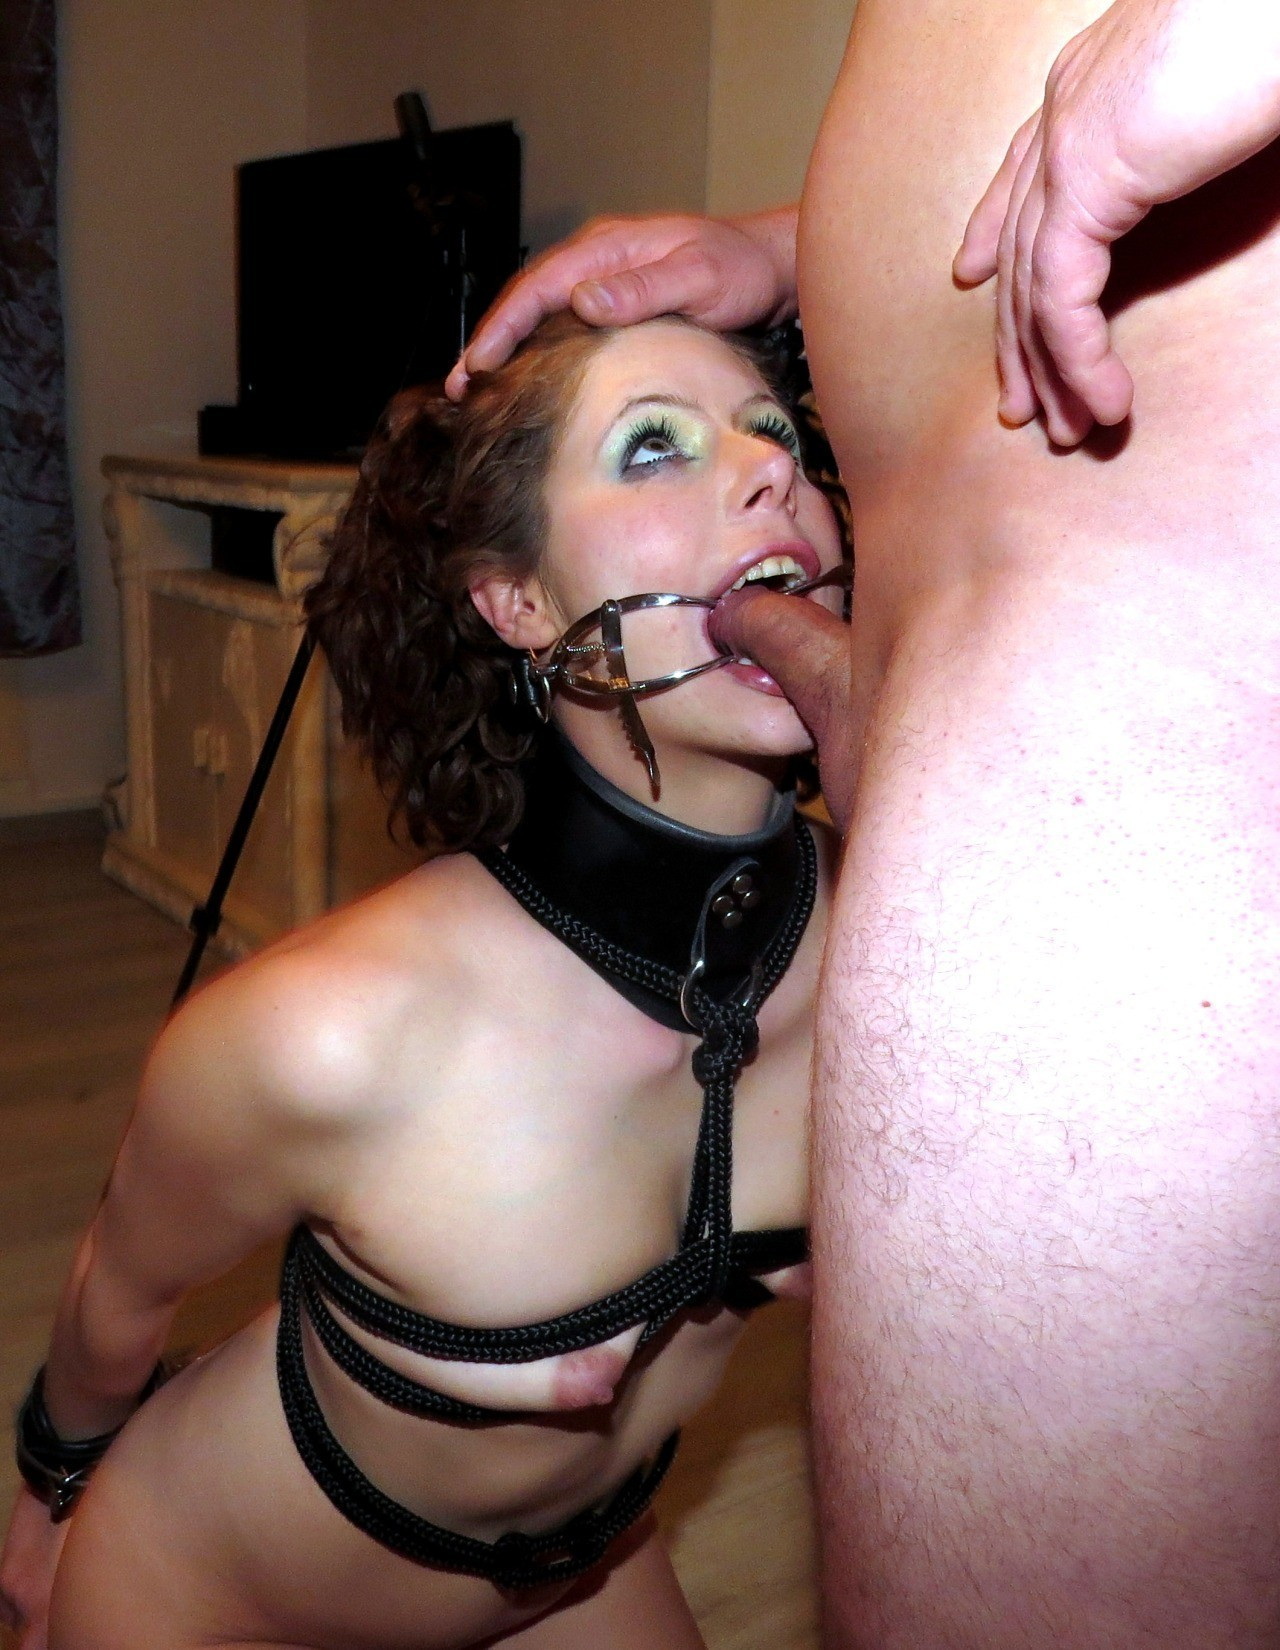 Gag whore pics and porn images